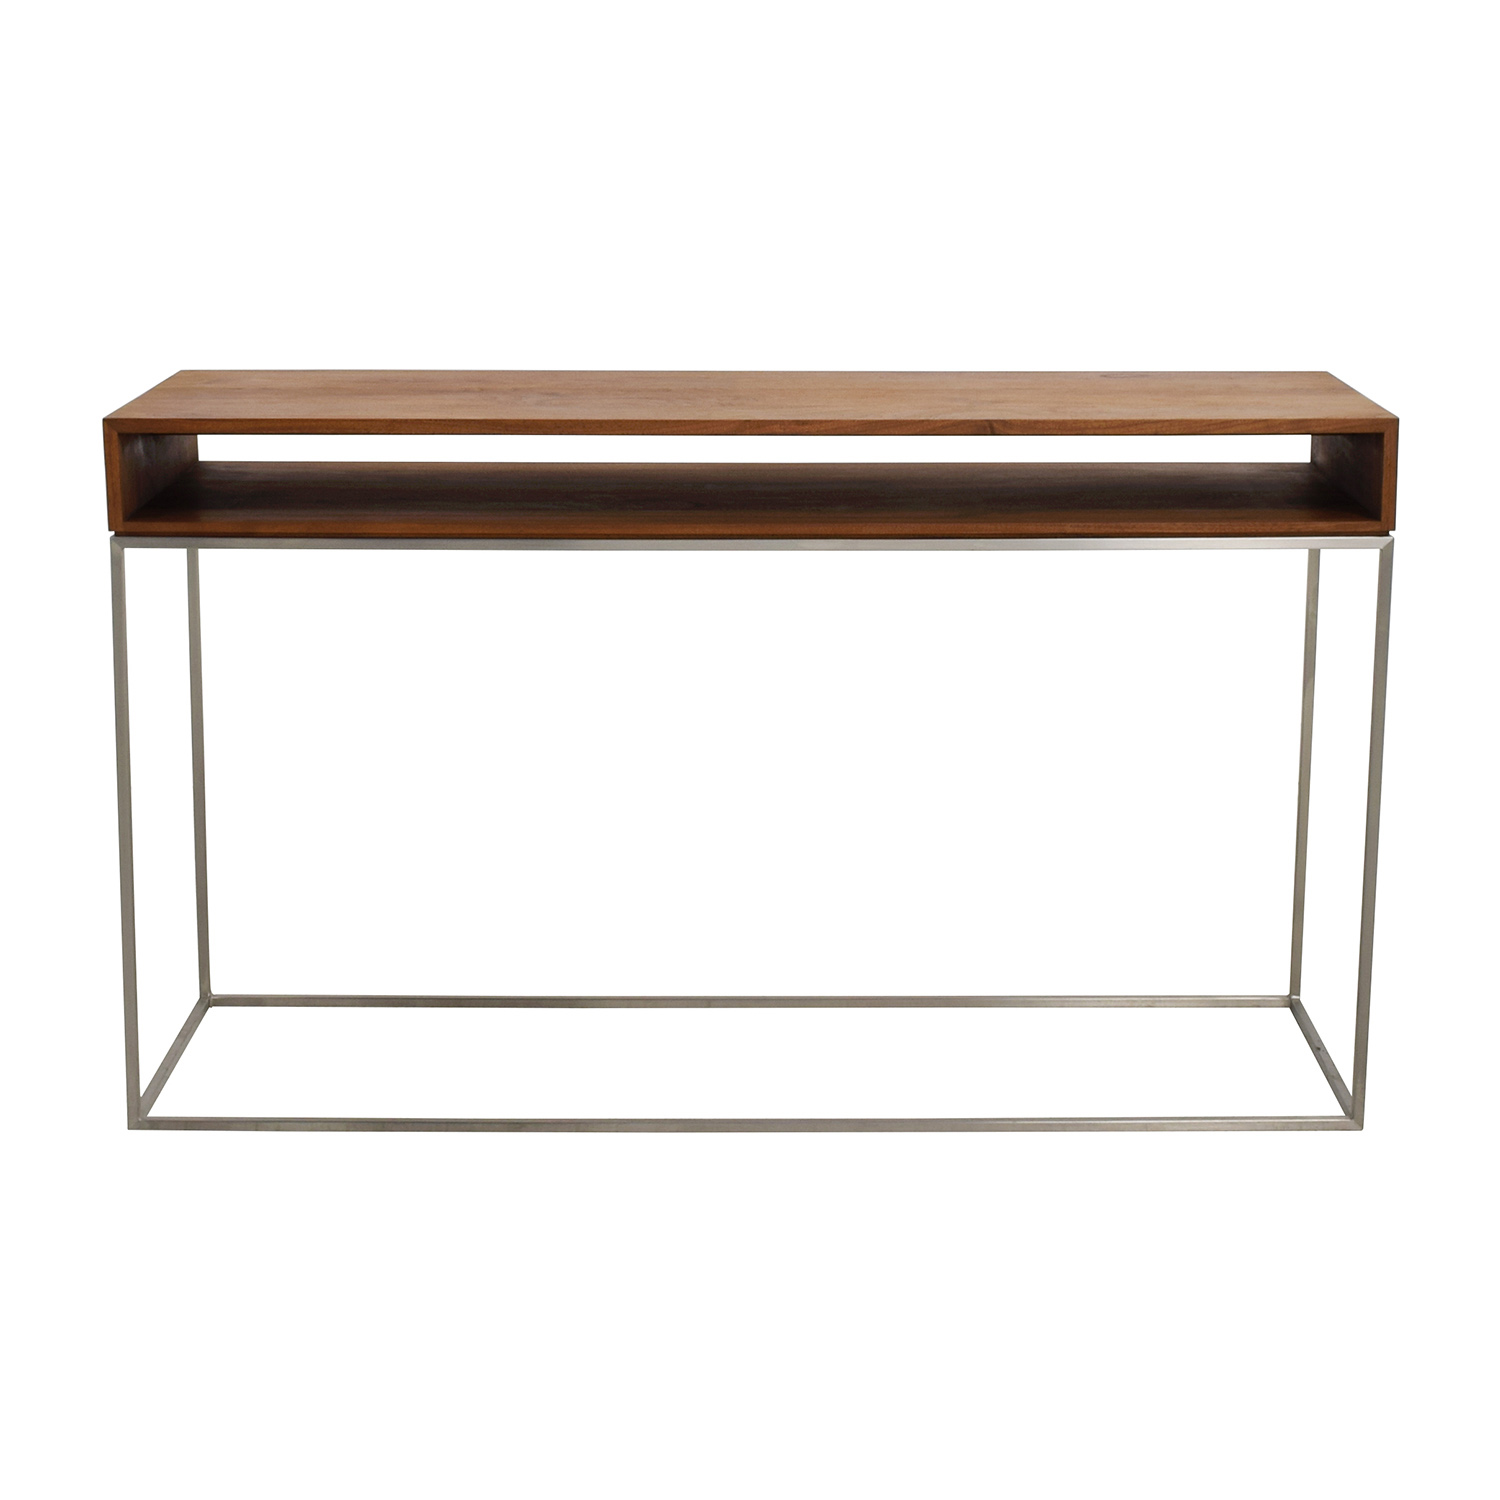 70% OFF - CB2 CB2 Wood and Metal Frame Console Table / Tables